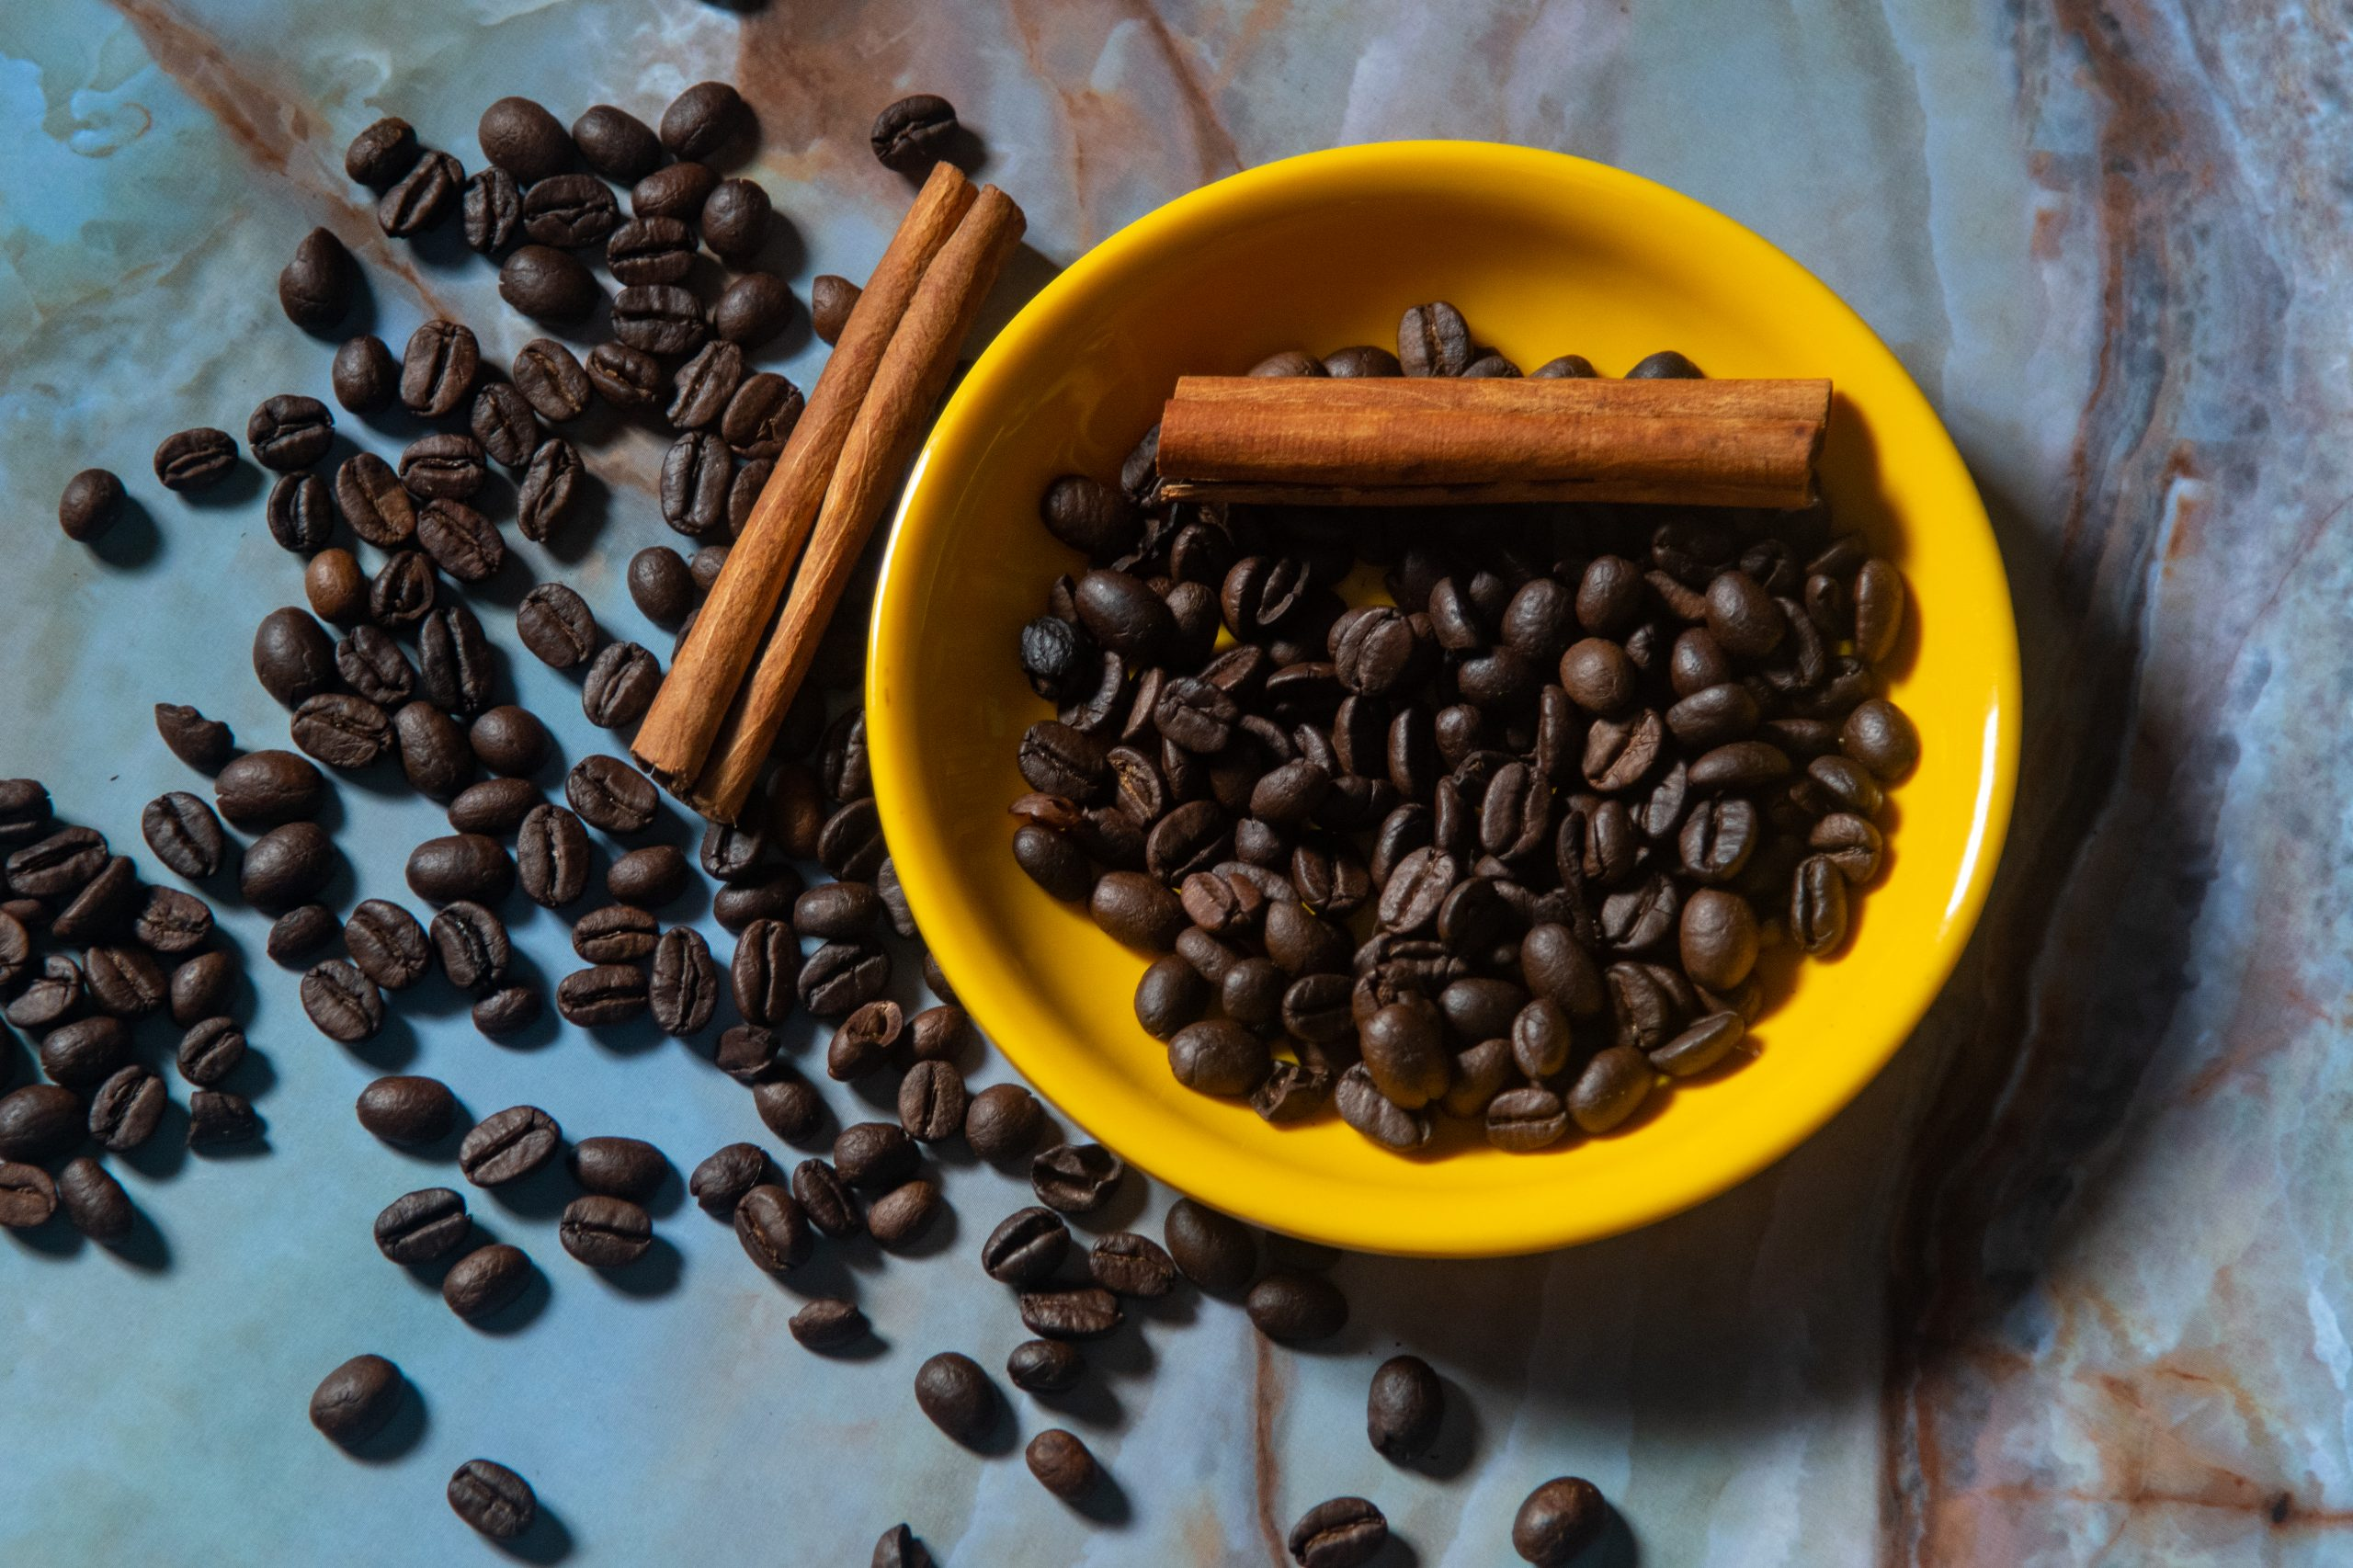 Coffee beans in the yellow cup